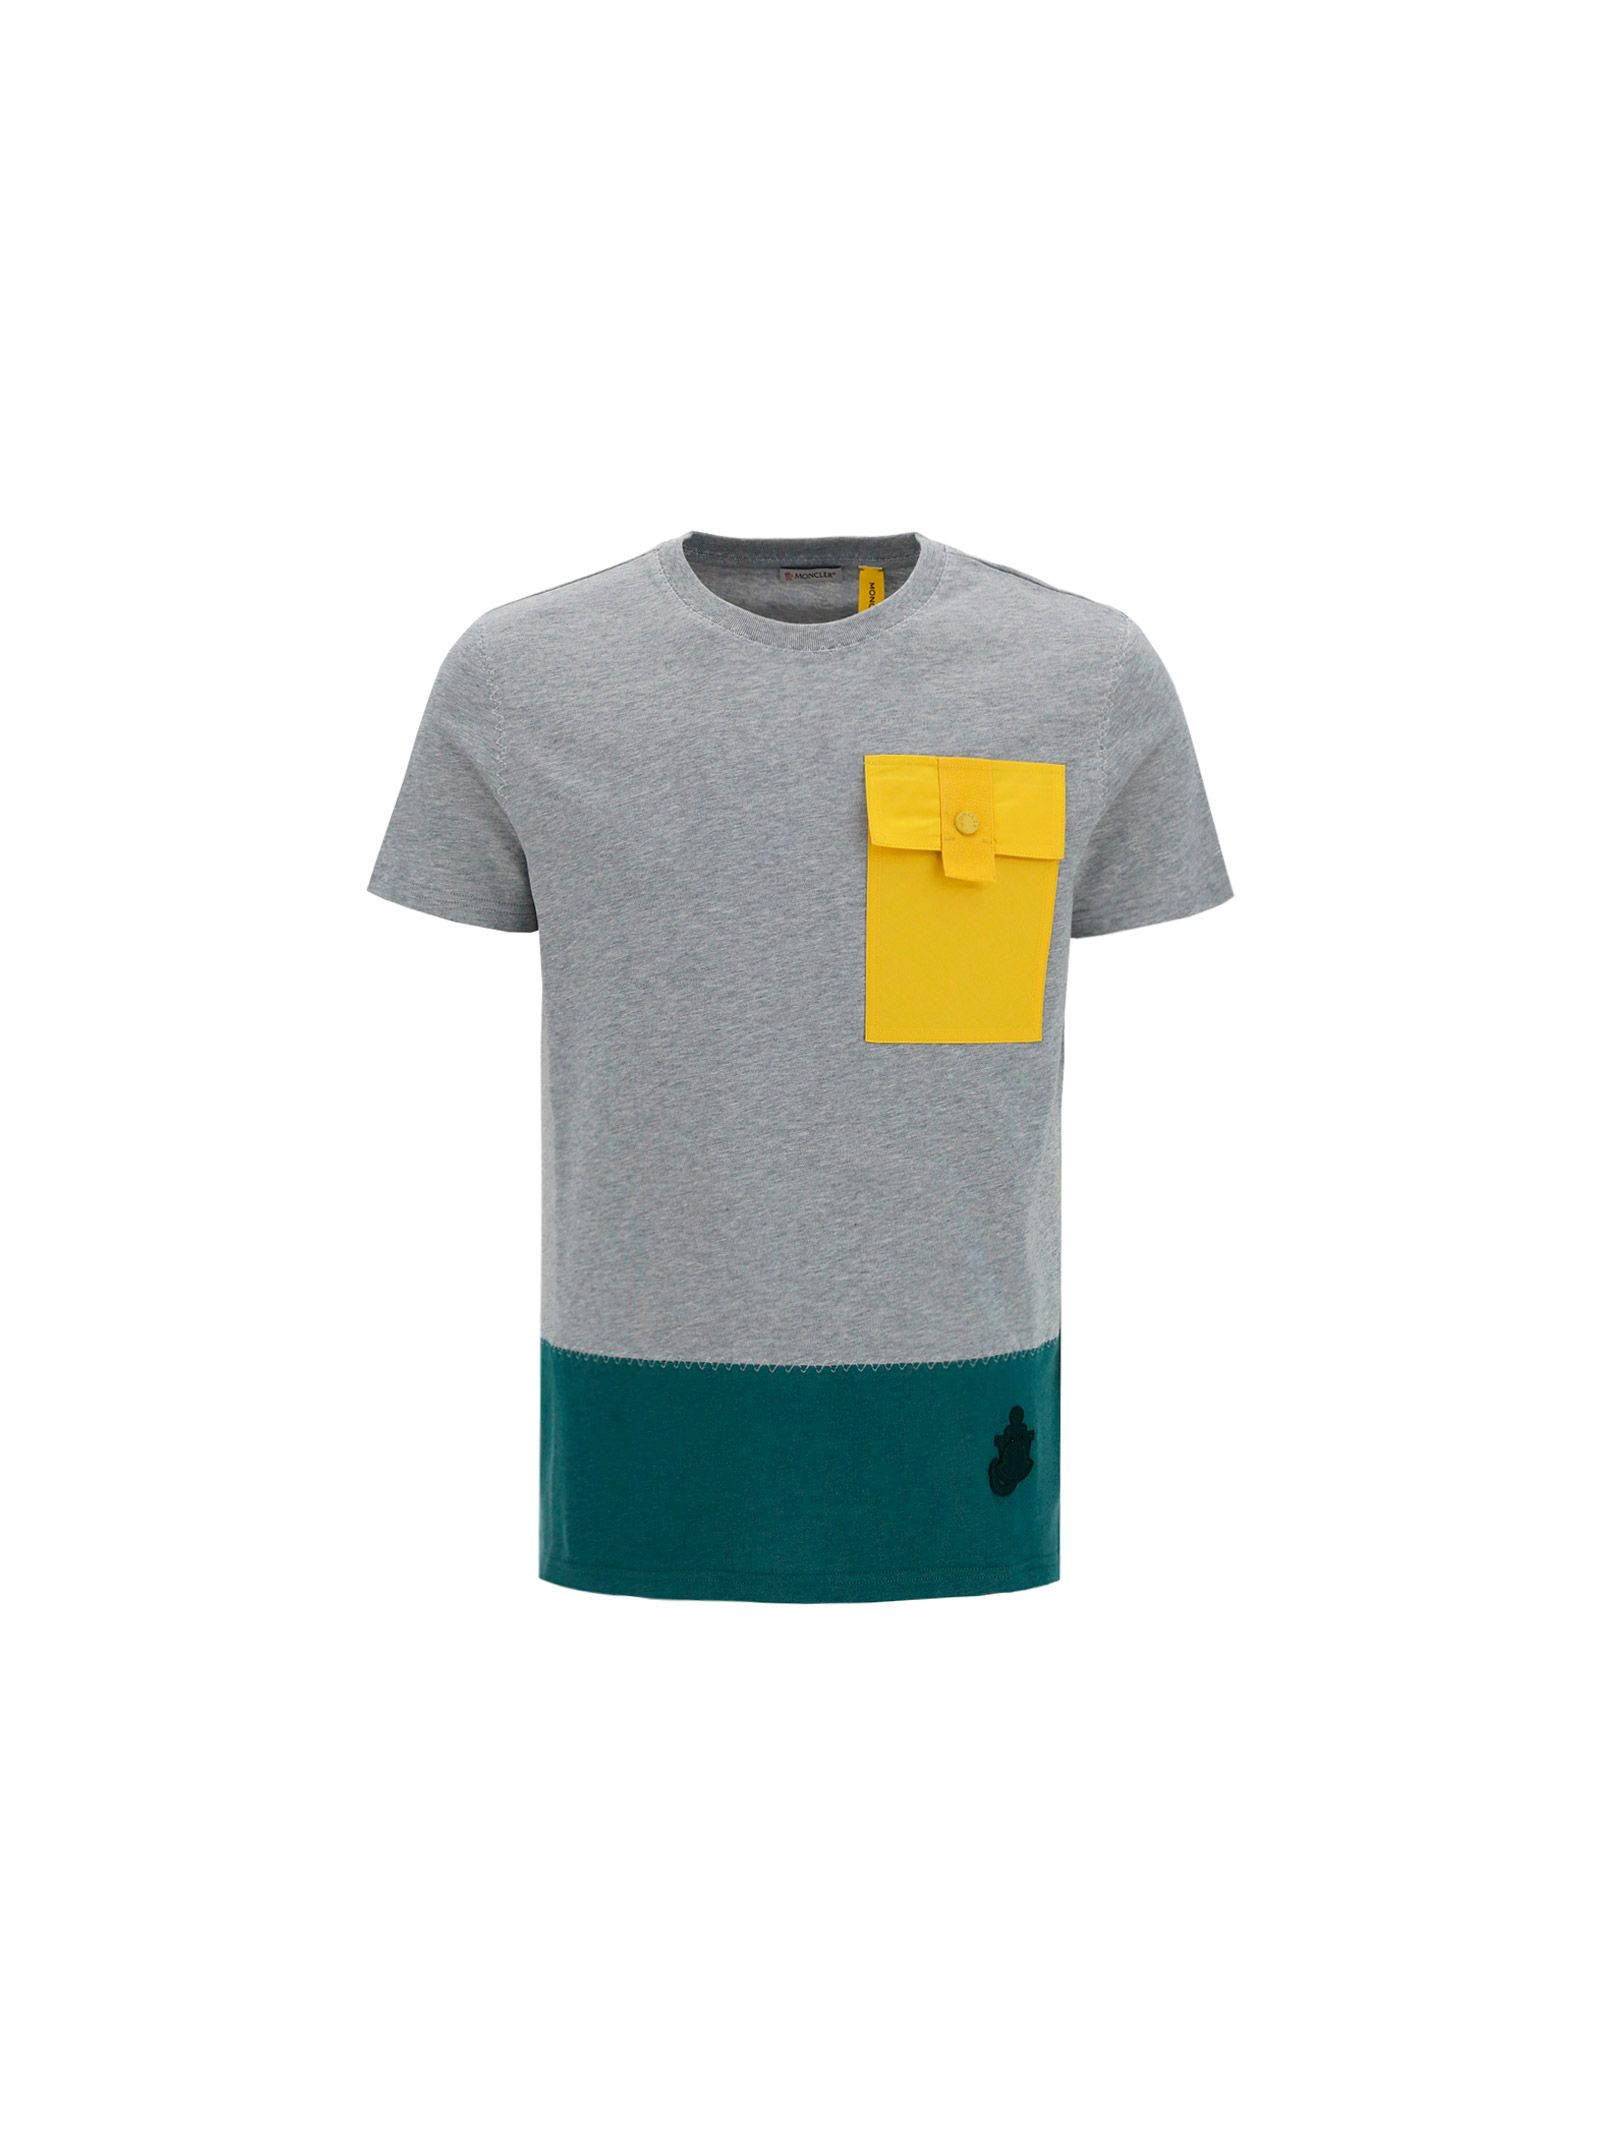 Moncler MONCLER MEN'S GREY OTHER MATERIALS T-SHIRT